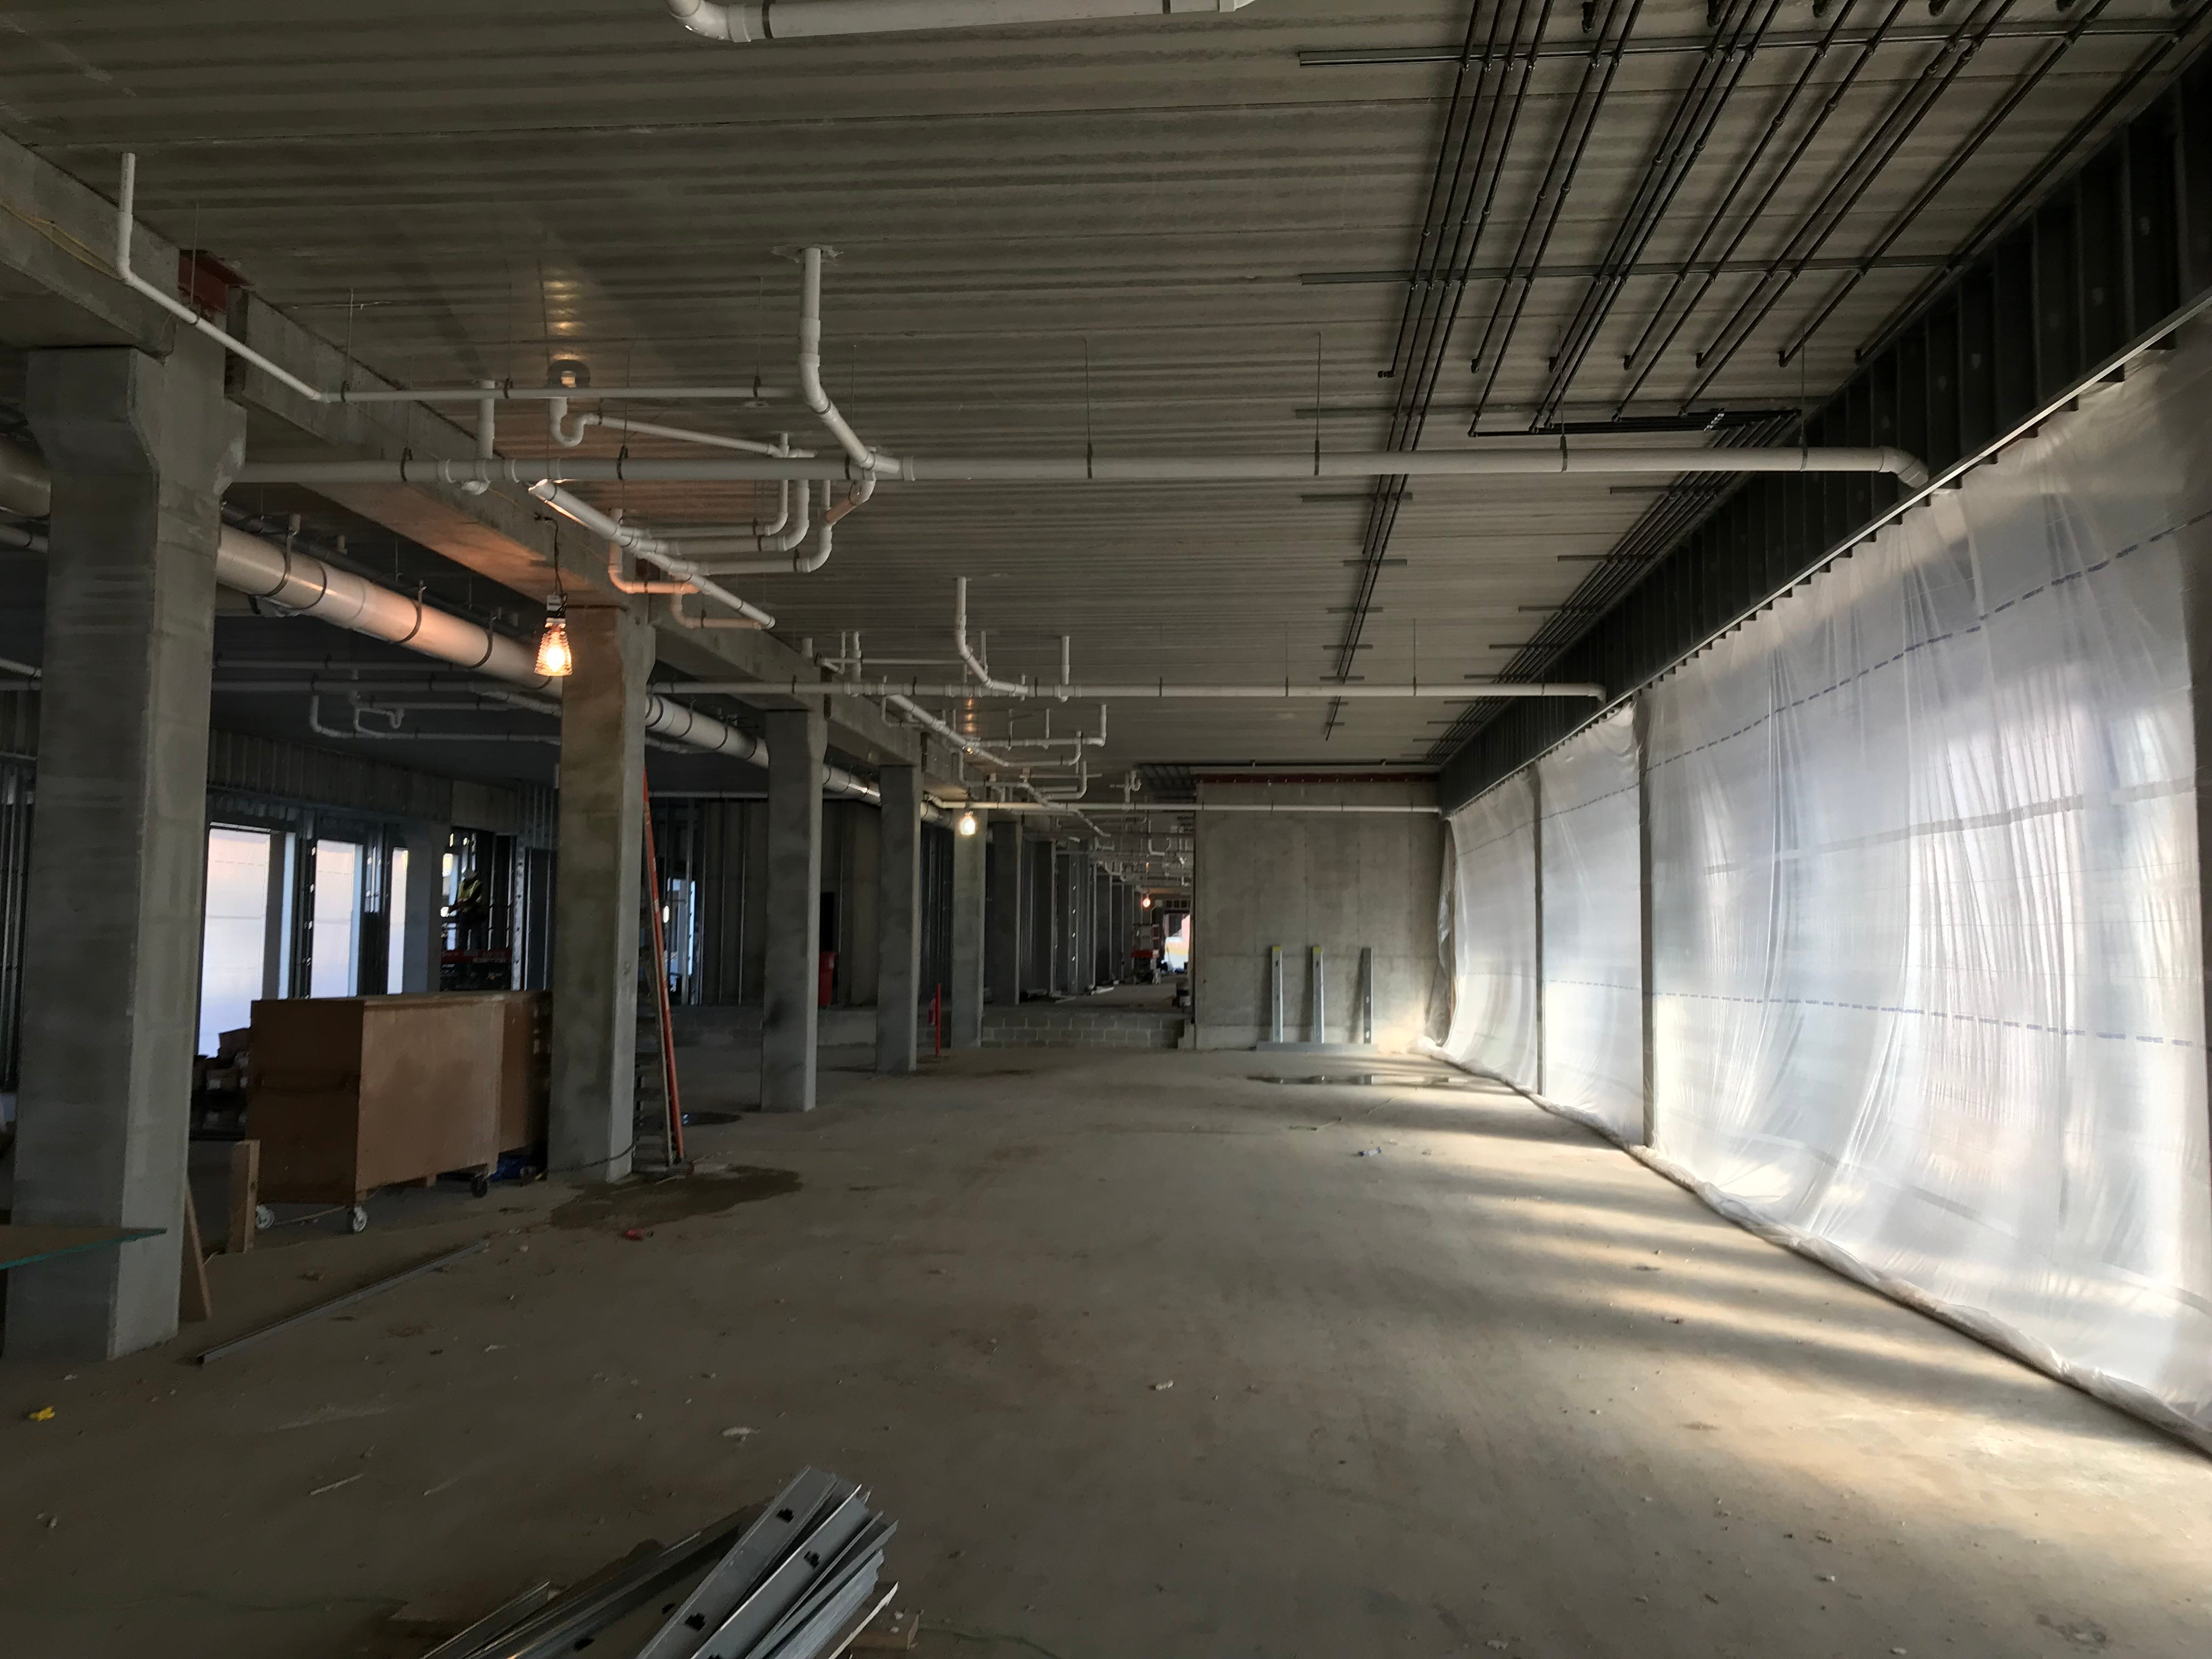 The future site of Severance Brewing on the ground floor of The Cascade at the Falls building in uptown Sioux Falls.